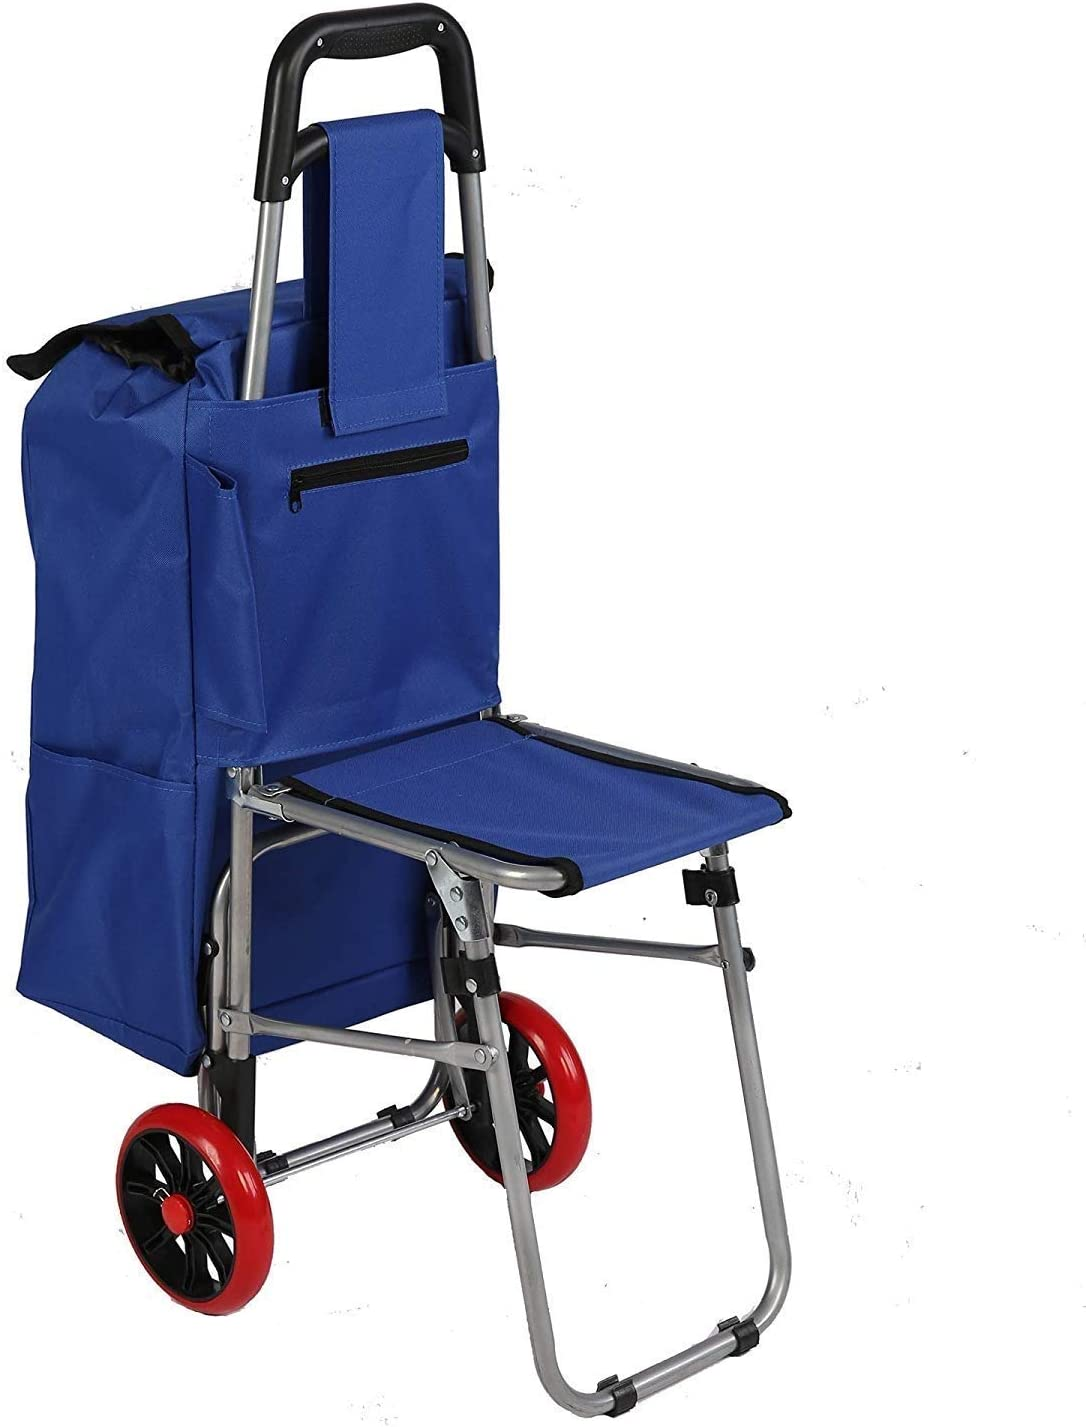 MYERZI Folding A surprise price is realized Shopper Luggage Cart Seat Collapsible With Outlet sale feature Grocer